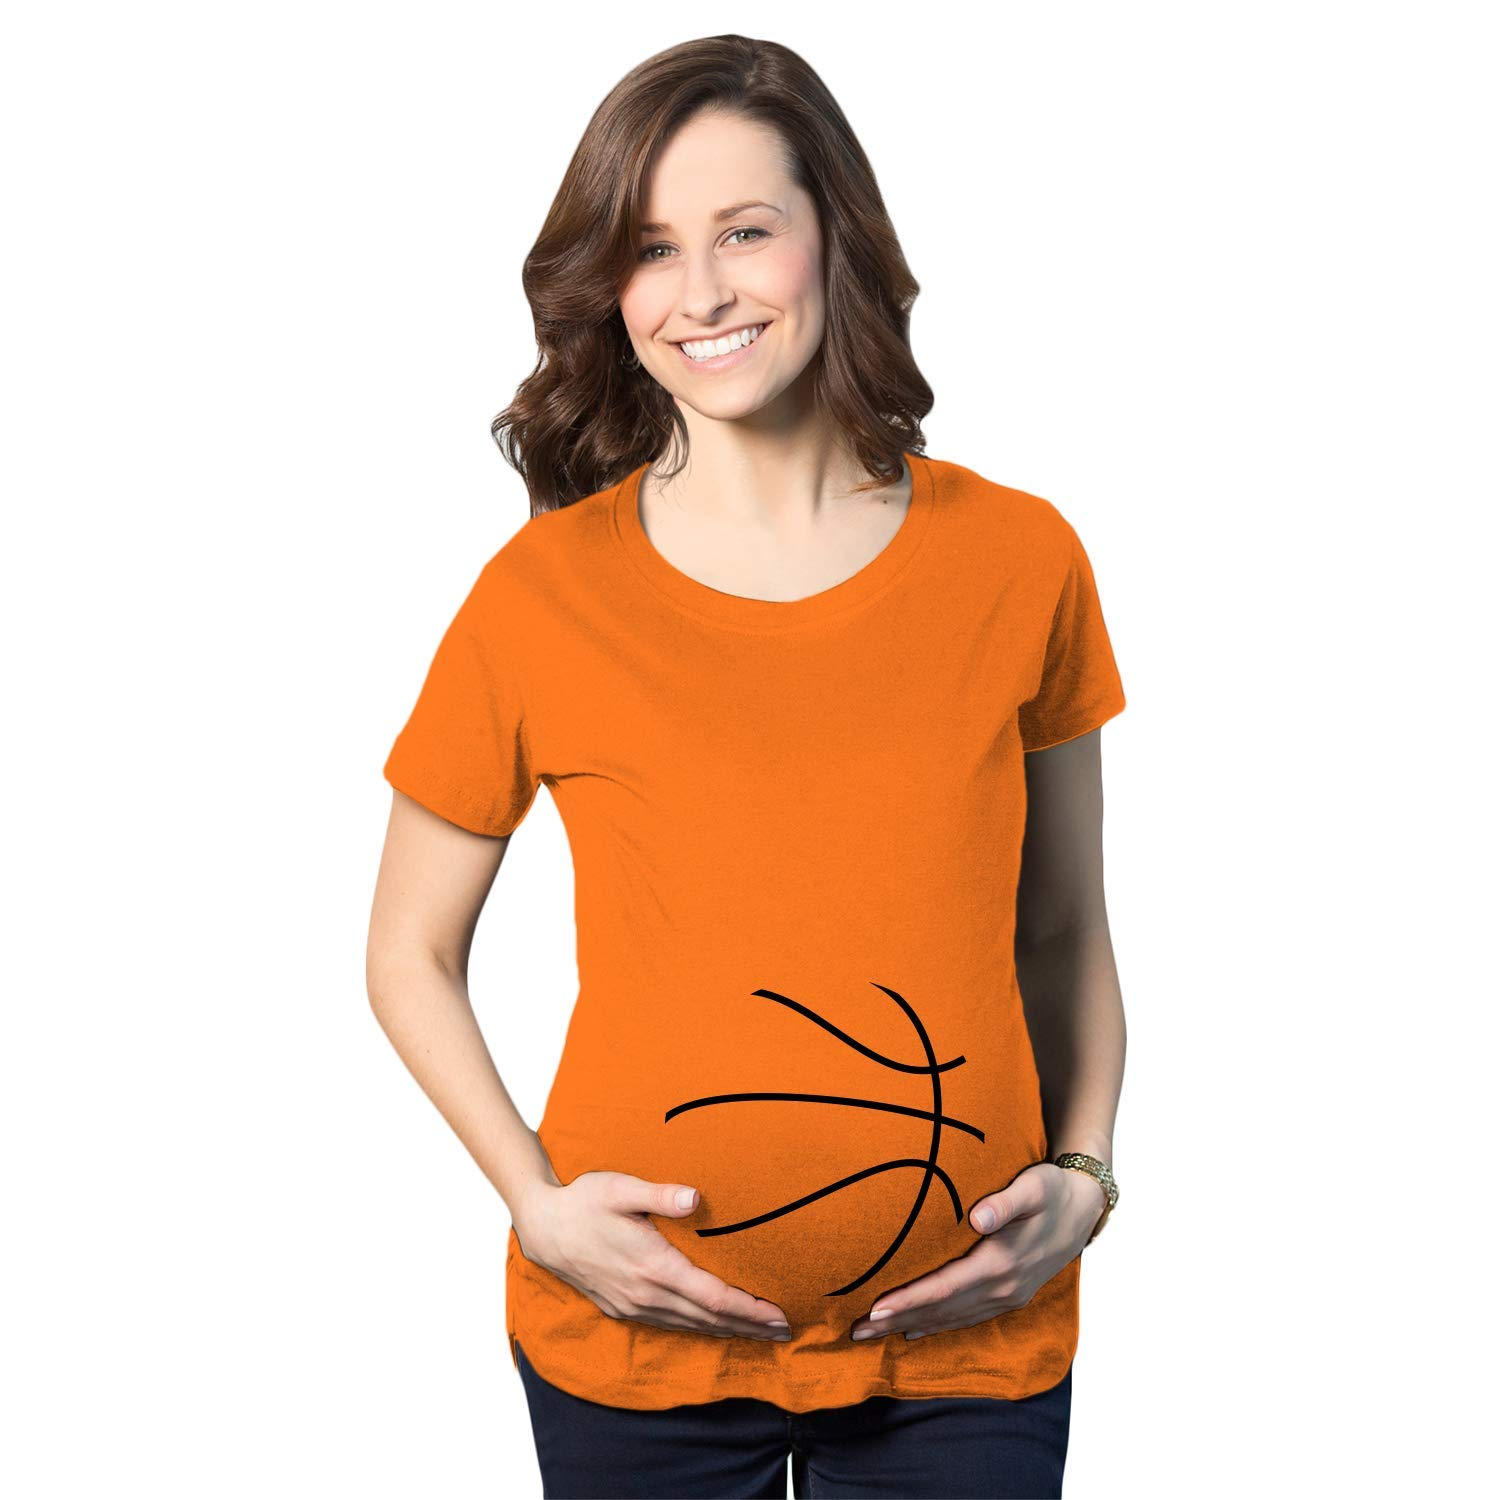 Maternity Basketball Bump Announcement Funny Pregnancy Gift Tee for Ladies Crazy Dog Tshirts